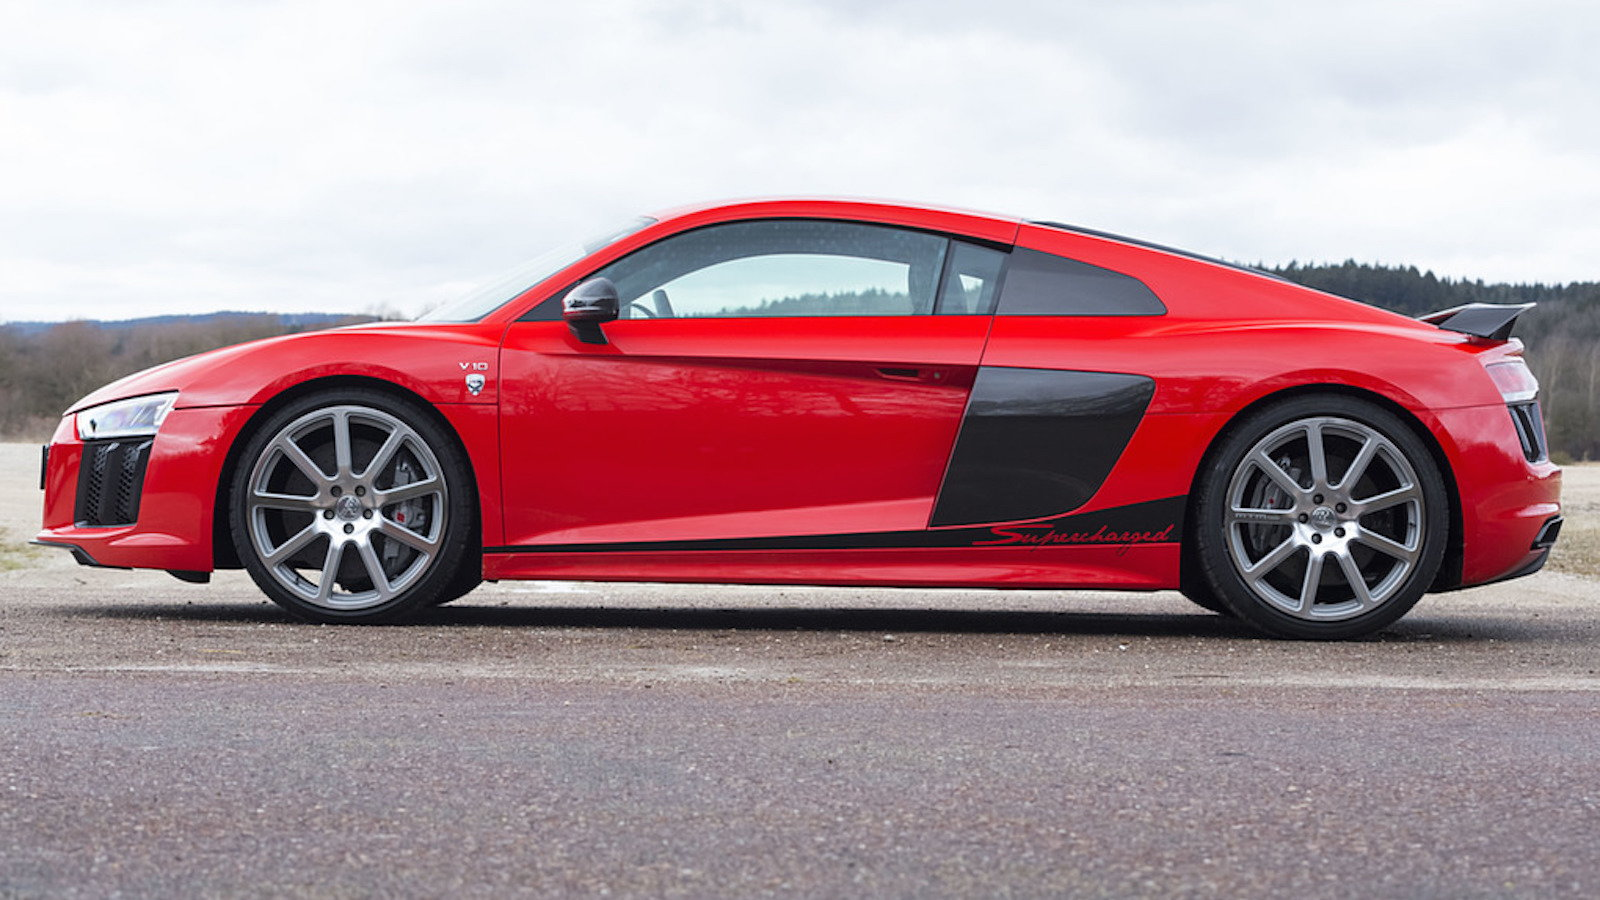 Some Reasons You Will Love the Audi R8